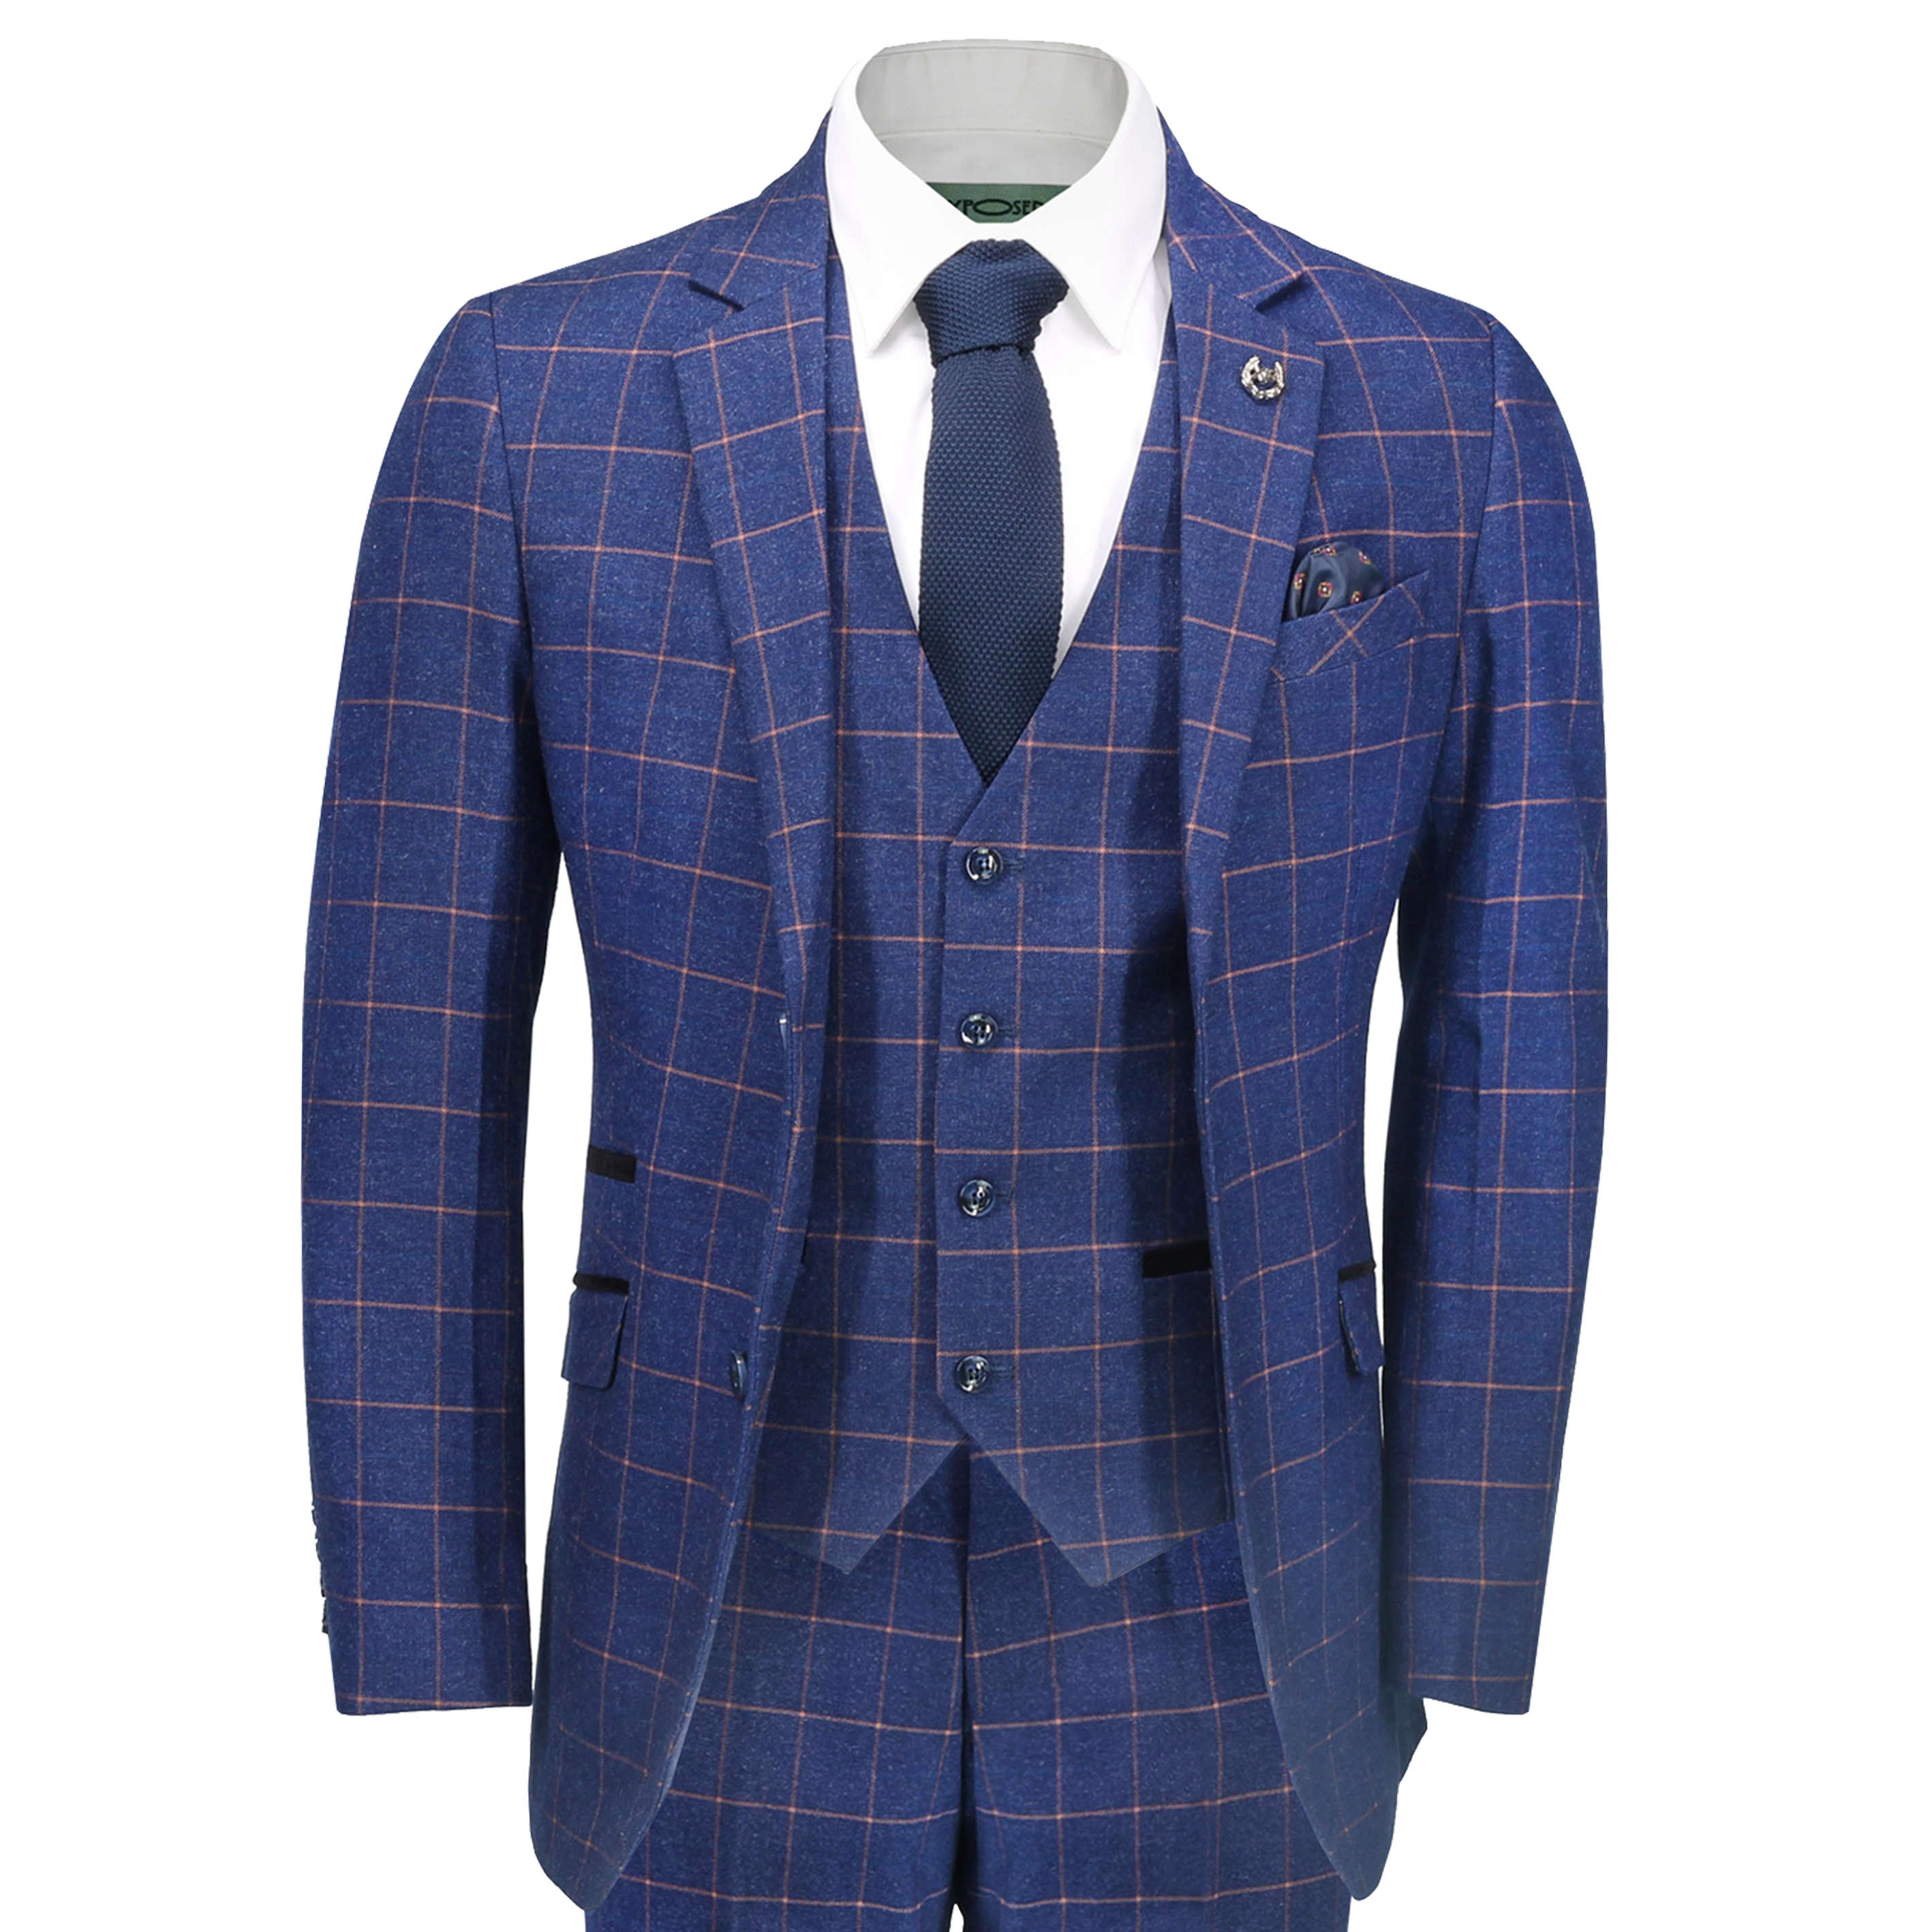 ee8ff60b496 Details about New Mens 3 Piece Blue Orange Window Check Retro Smart  Tailored Fit Vintage Suit